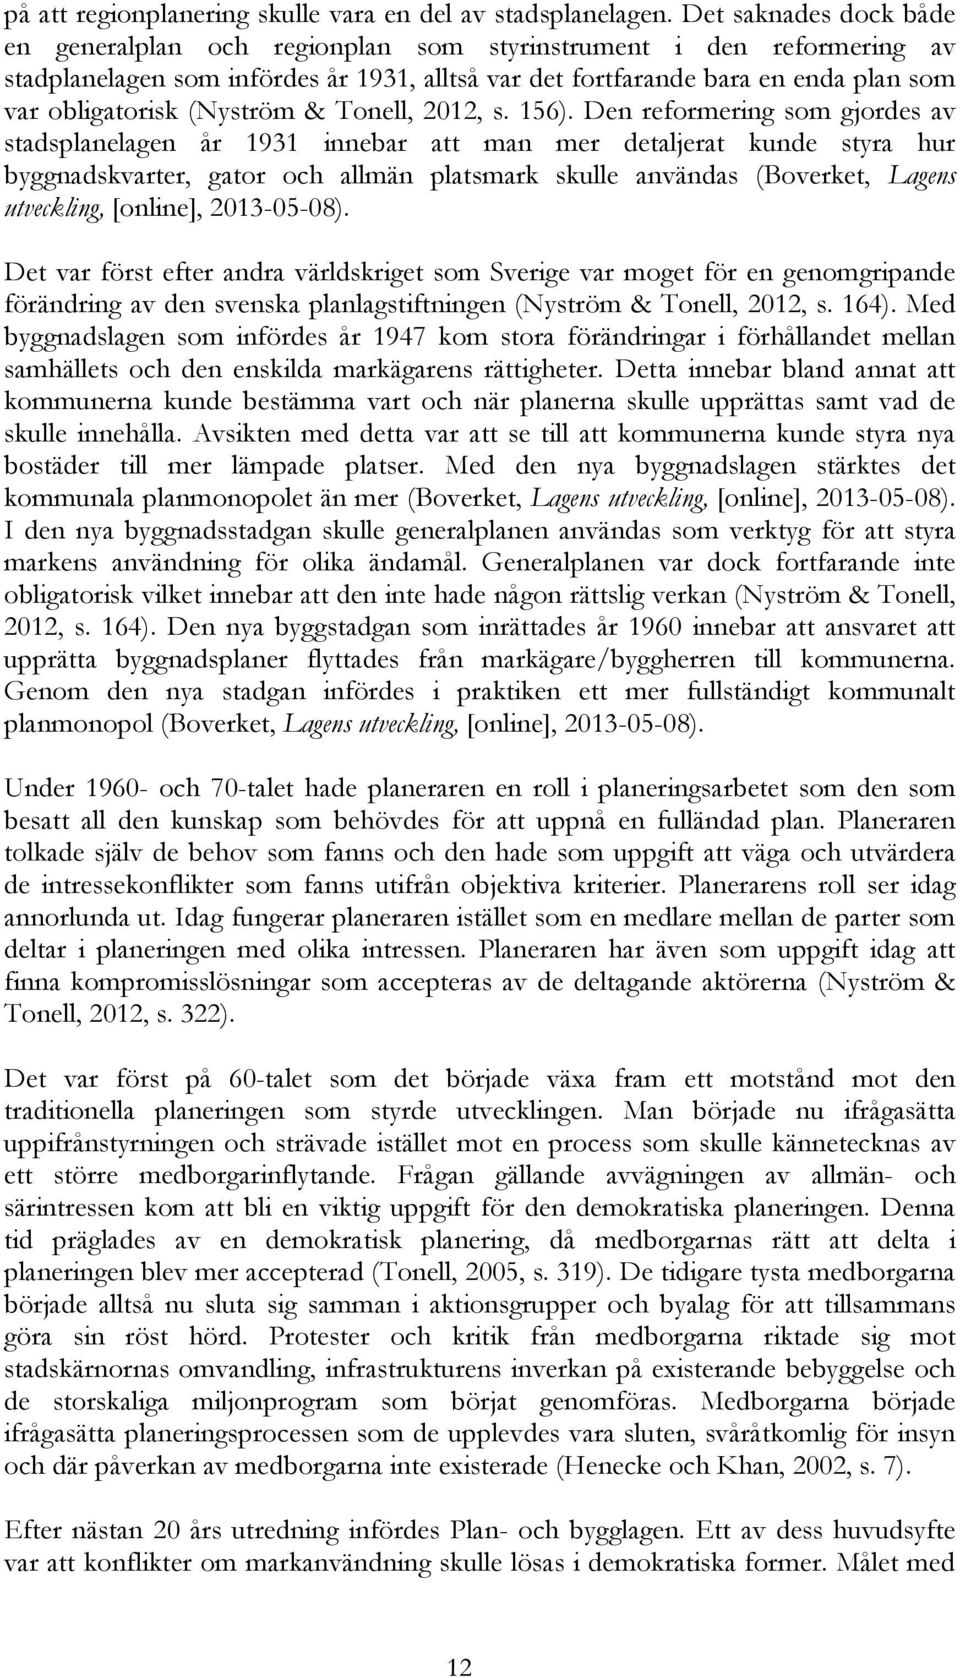 (Nyström & Tonell, 2012, s. 156).